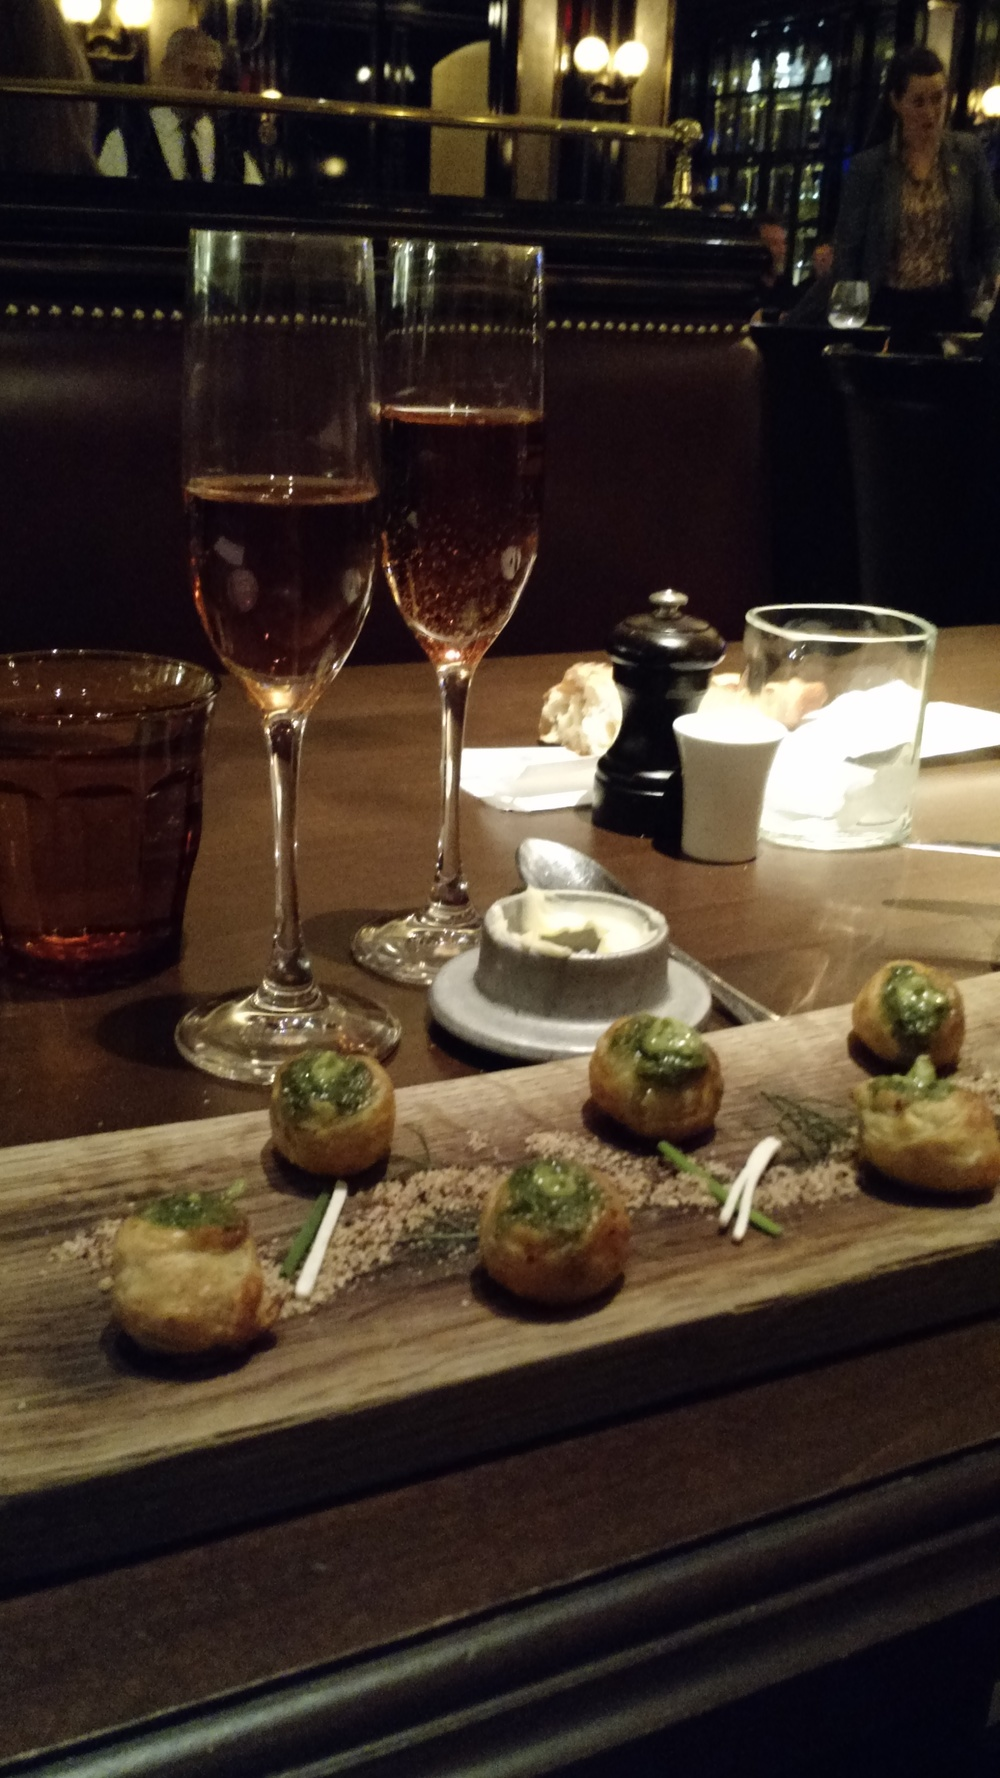 DAY 3 DINNER RESTAURANT BARDOT CHAMPAGNE ESCARGOT